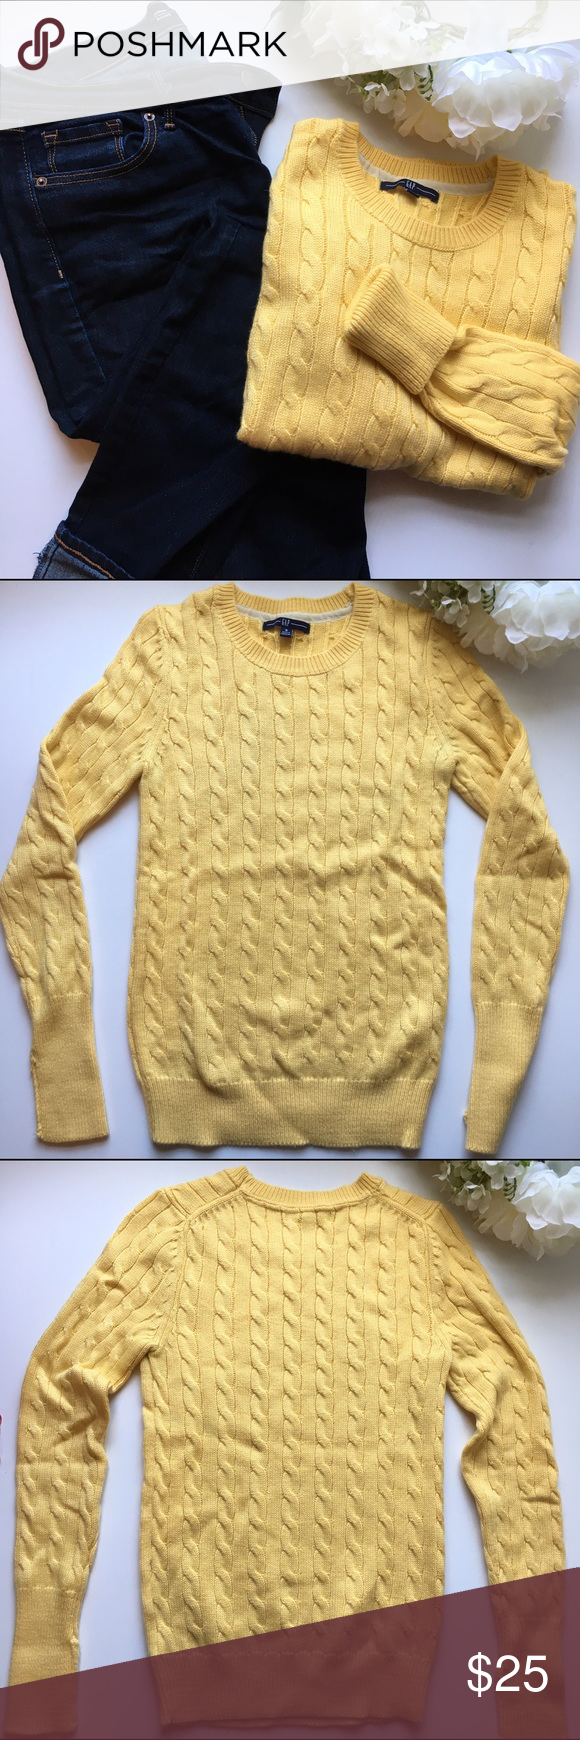 """GAP // Cable Knit Sweater - yellow The classic sweater from the GAP. Textured cable knit stitching. Features longer sleeves to be cuffed. Has been worn but in great condition.   45% acrylic 45% nylon 10% angora rabbit hair  Measurements: bust 28"""" Waist 28"""" Hips 24"""" Length 23"""" Sleeve length 25"""" GAP Sweaters Crew & Scoop Necks"""